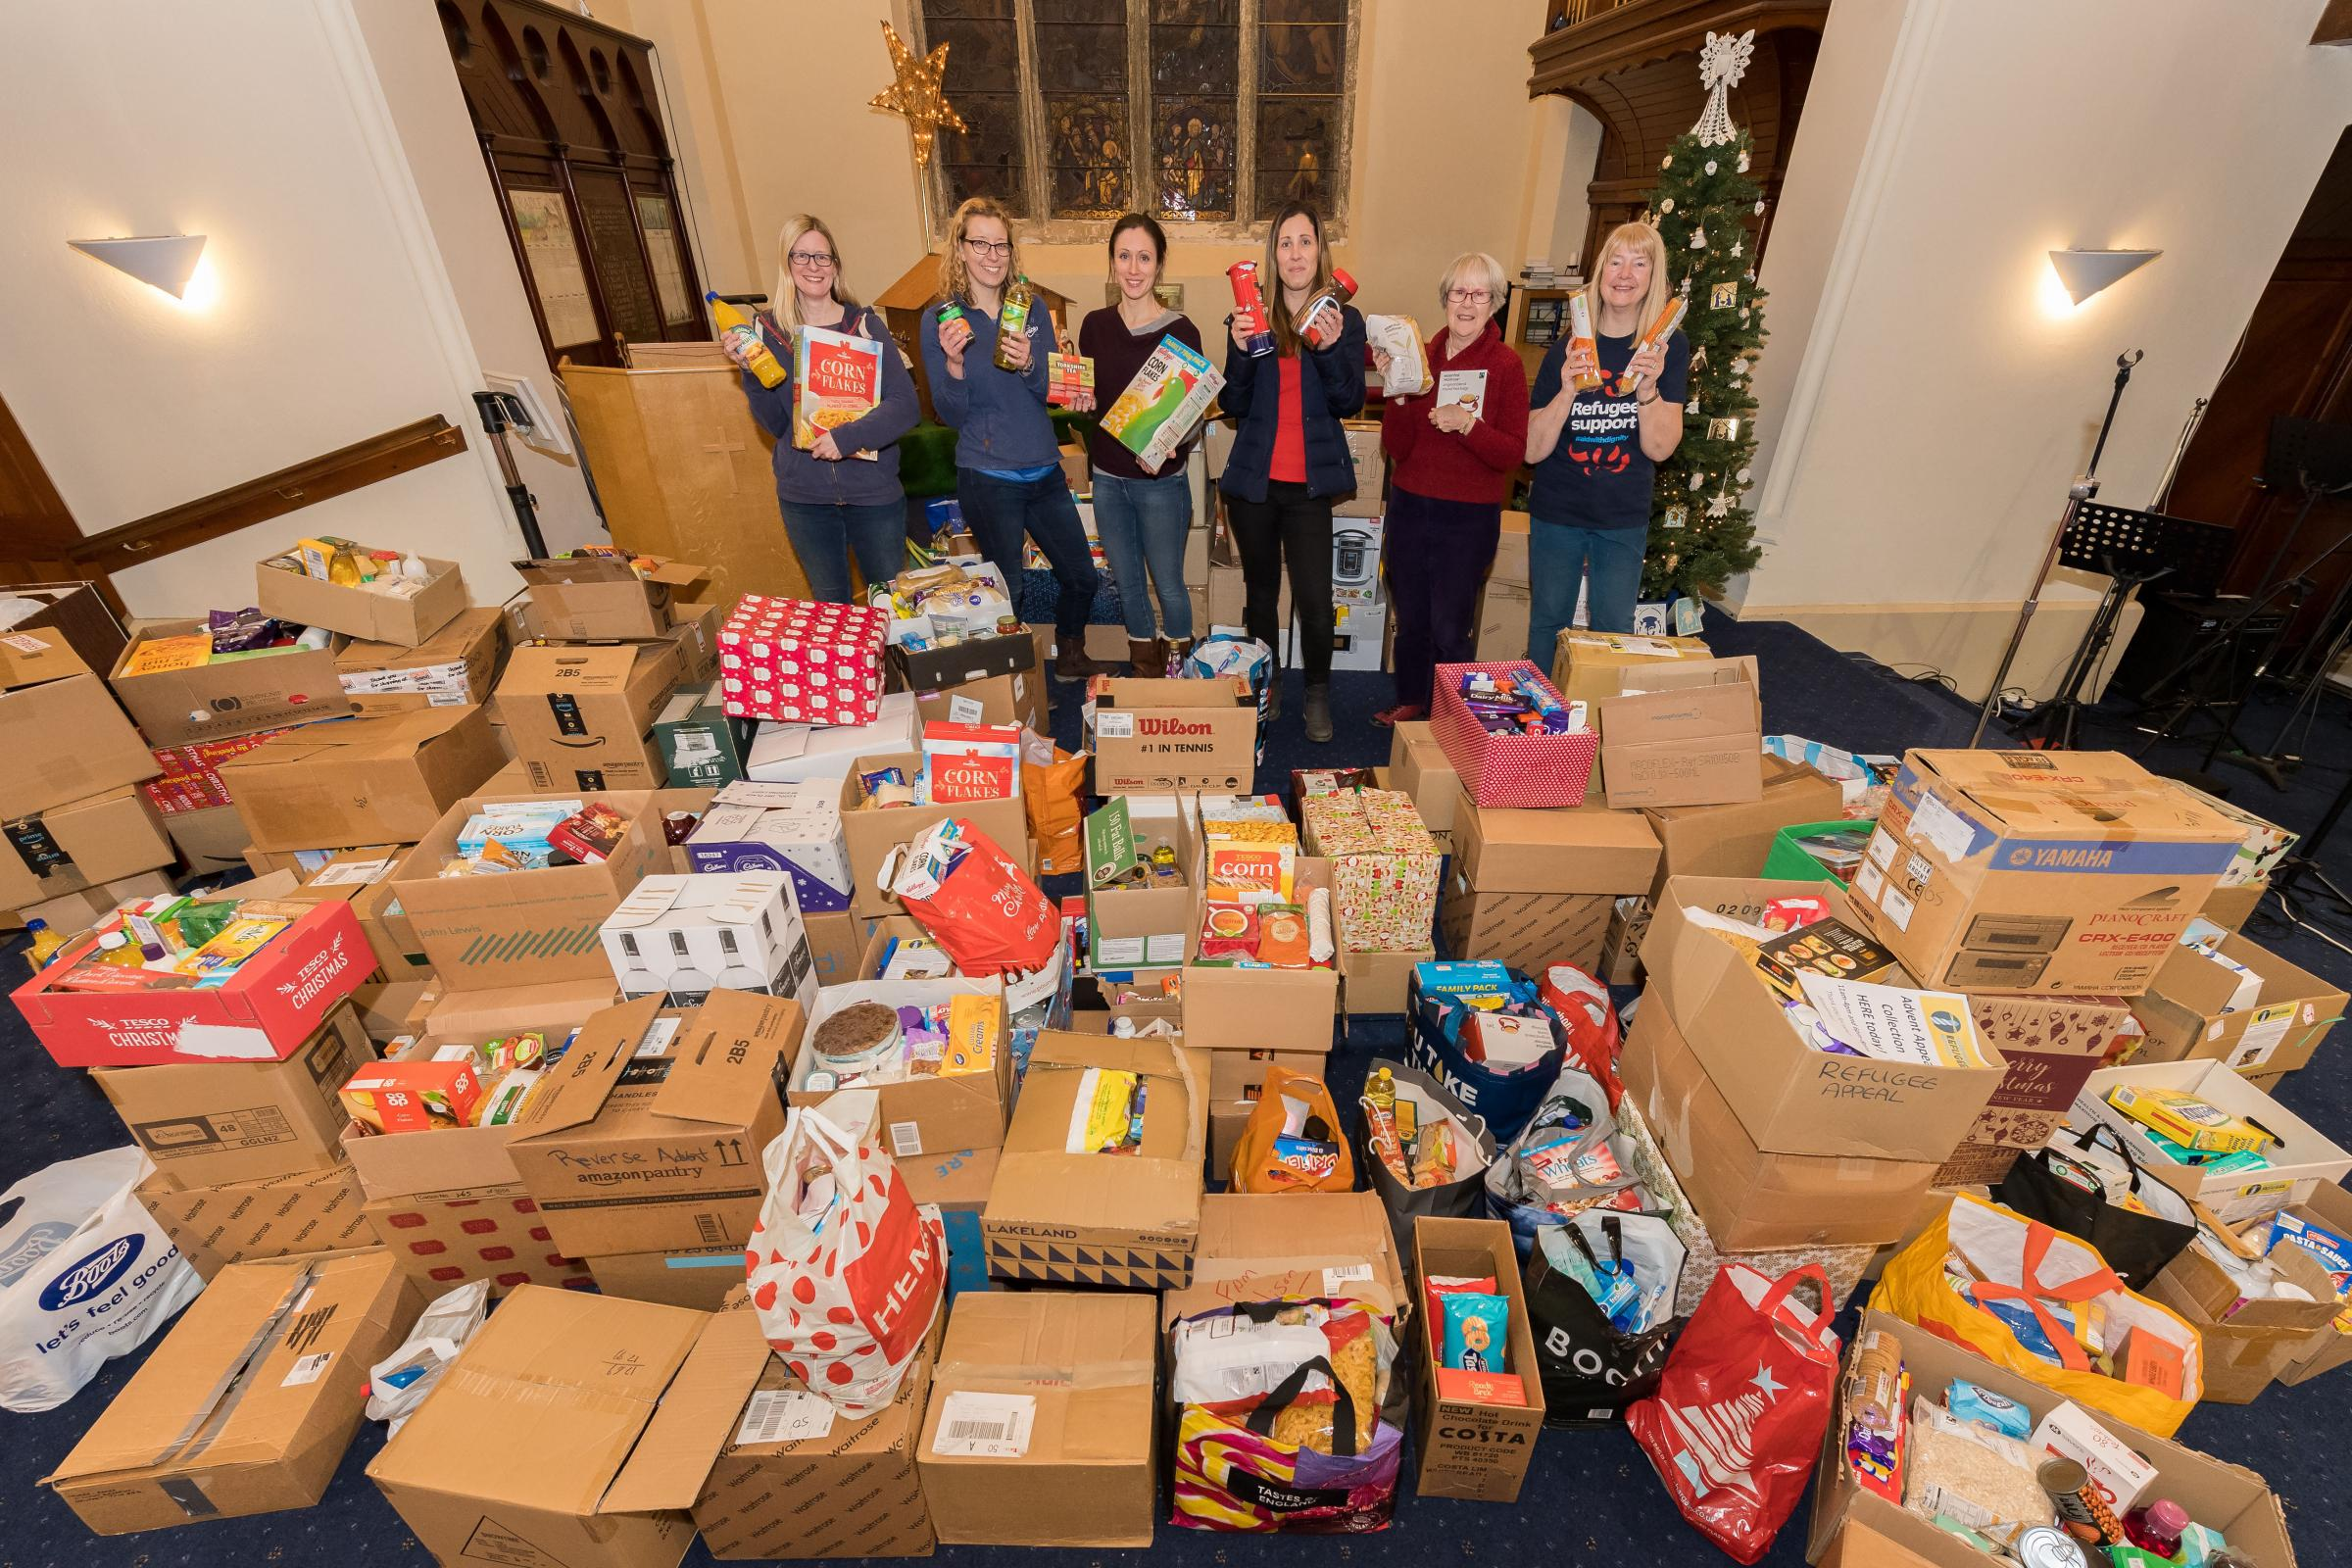 Wharfedale Refugee Response with the collection for the Reverse Advent Calendar Appeal at Burley In Wharfedale Methodist Church. Pictured left to right are: Catherine MacIntosh Dixon - Sarah Bruce - Sarah Mahony (organiser) - Stephanie Hull - Gillian MacI